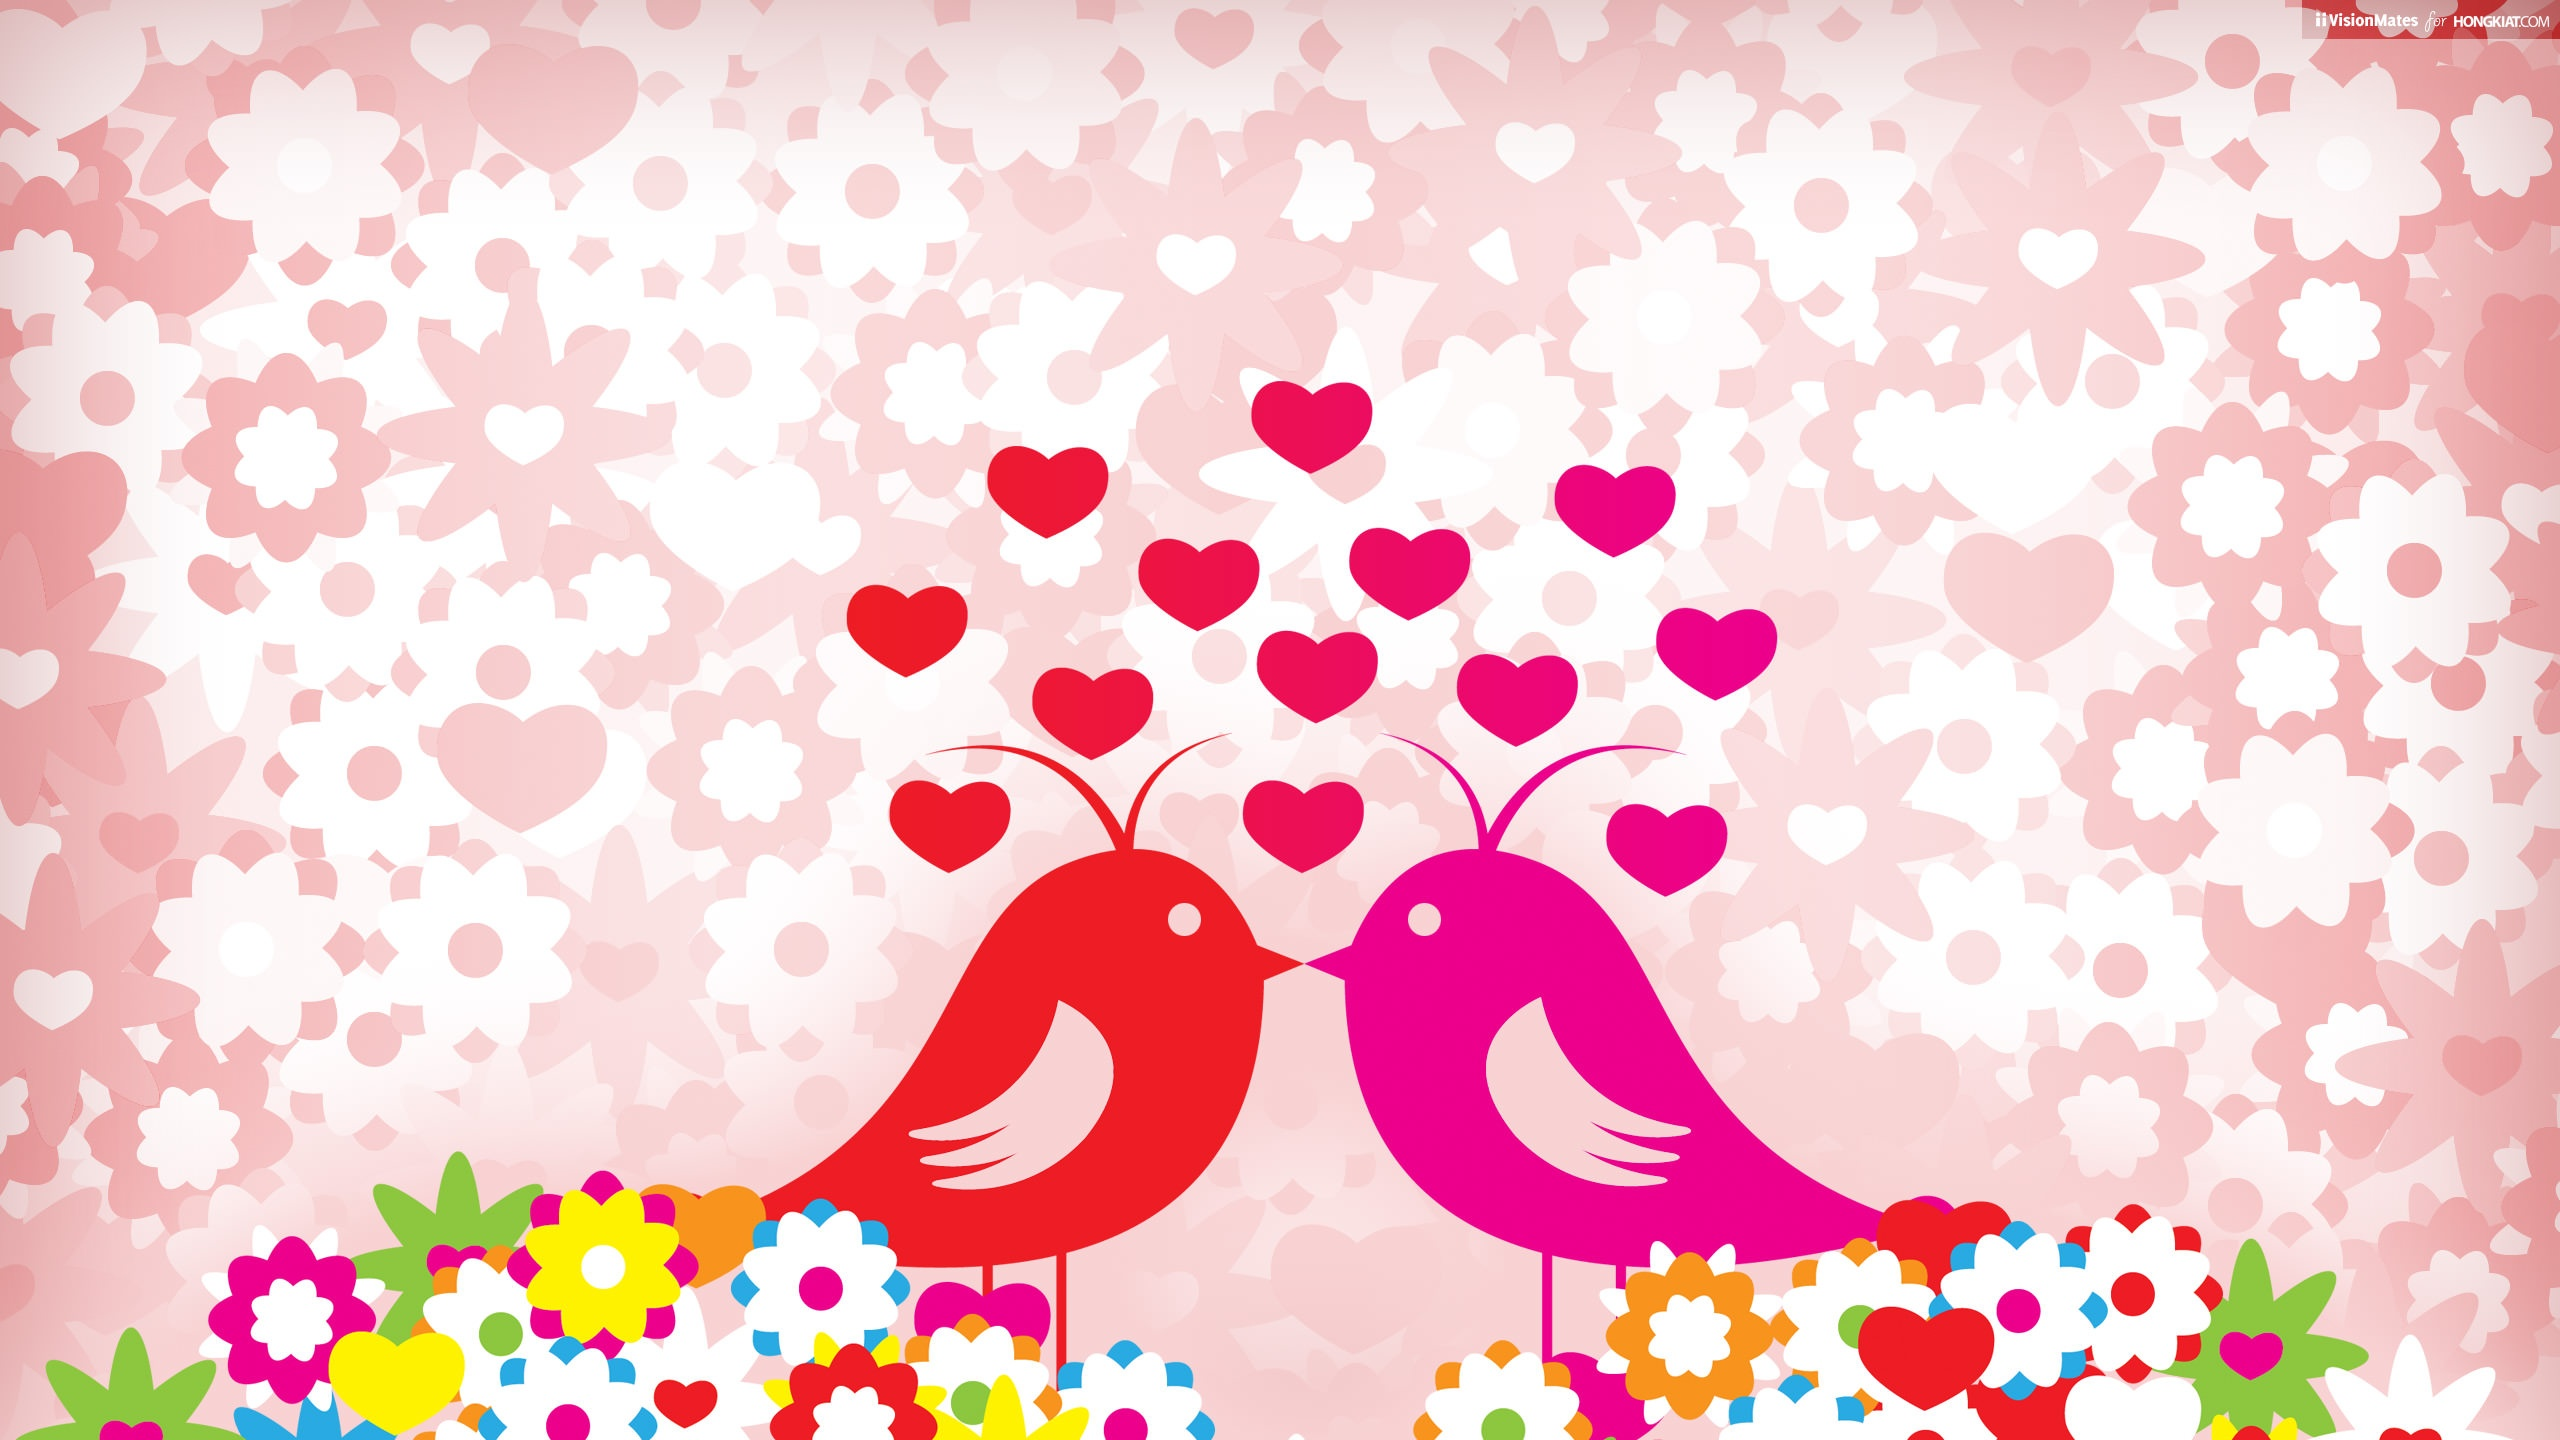 WWW Lovely Wallpaper Com